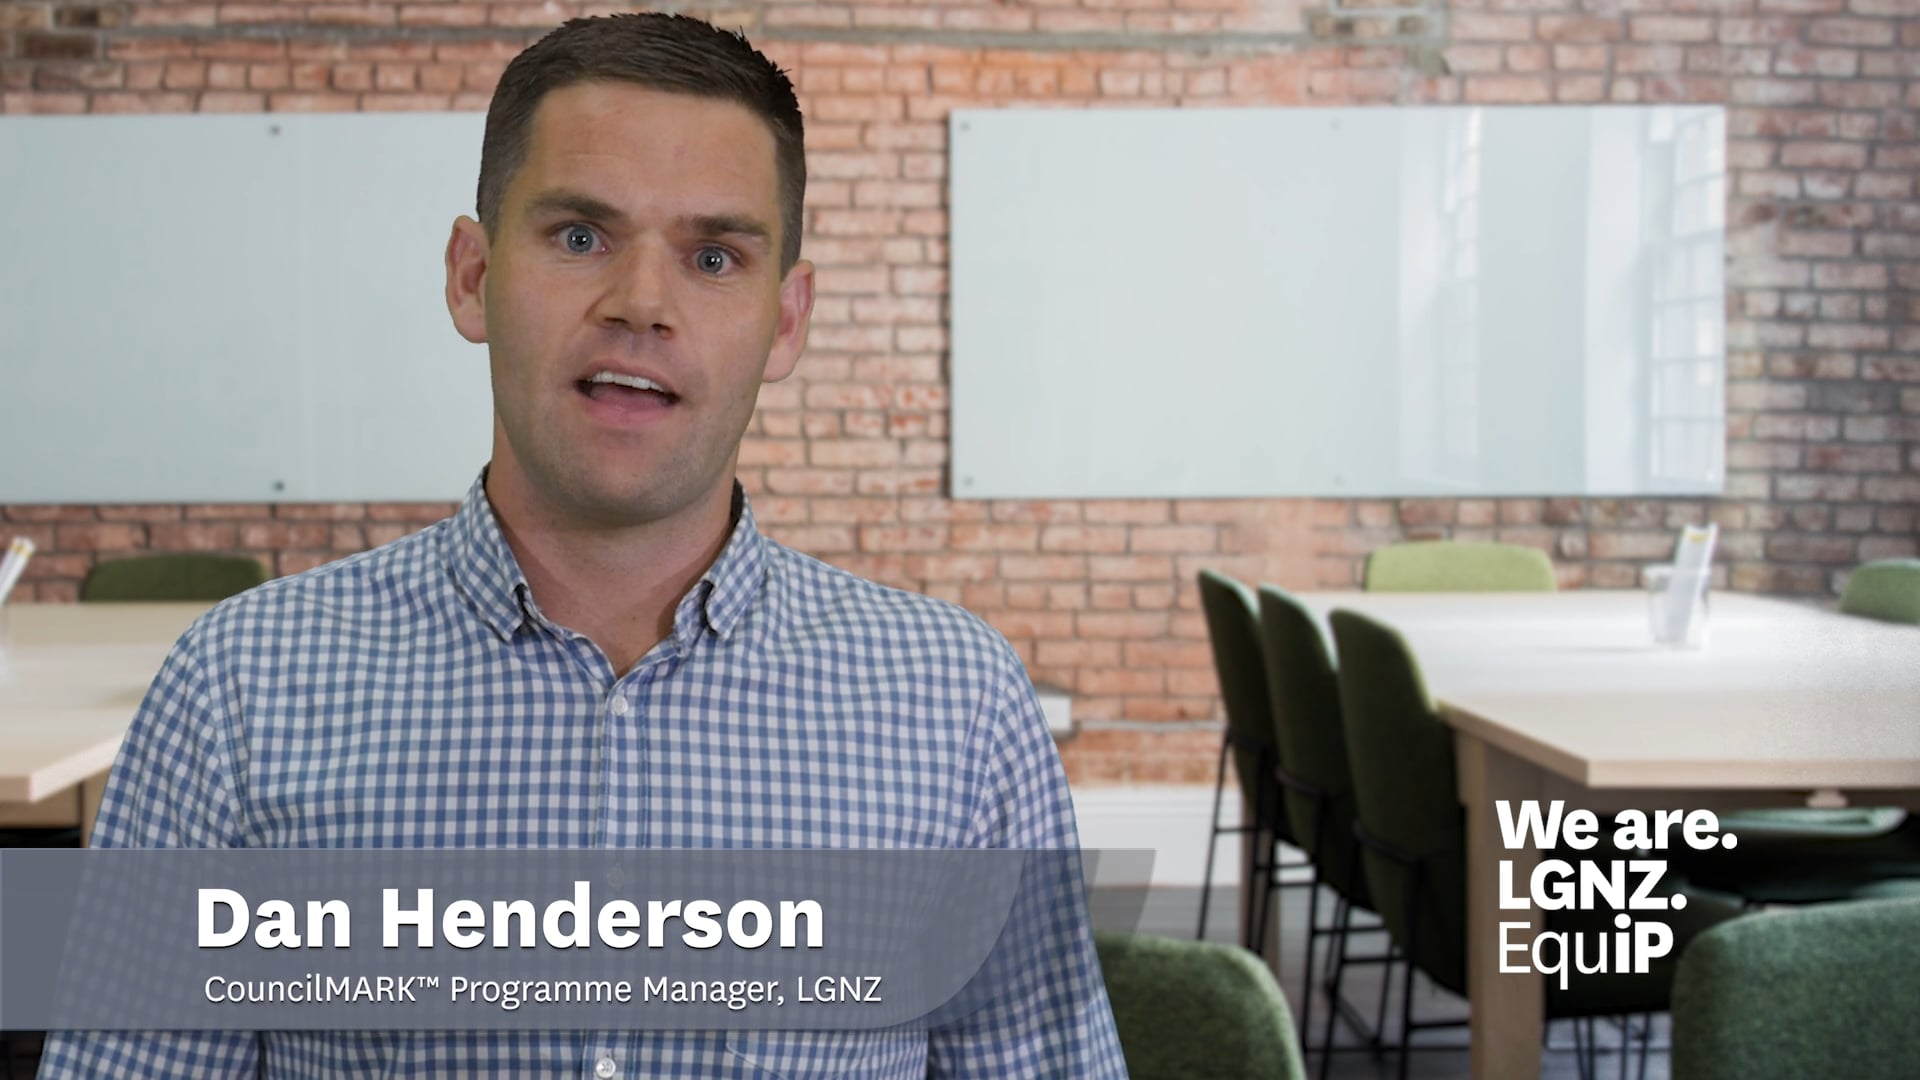 Life as an elected member - with Dan Henderson